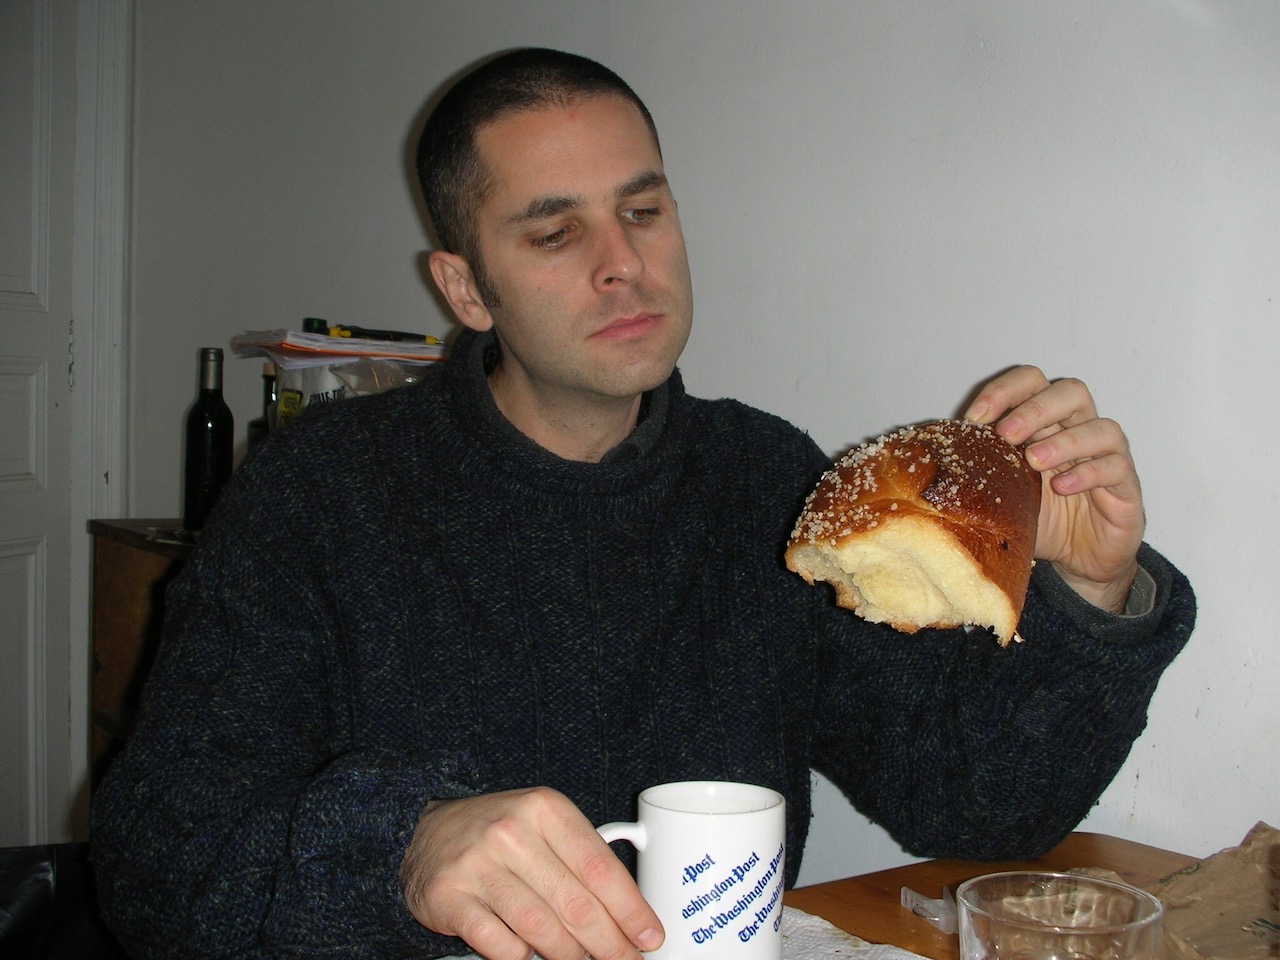 The author in Paris in 2008, thinking small thoughts with a big brioche